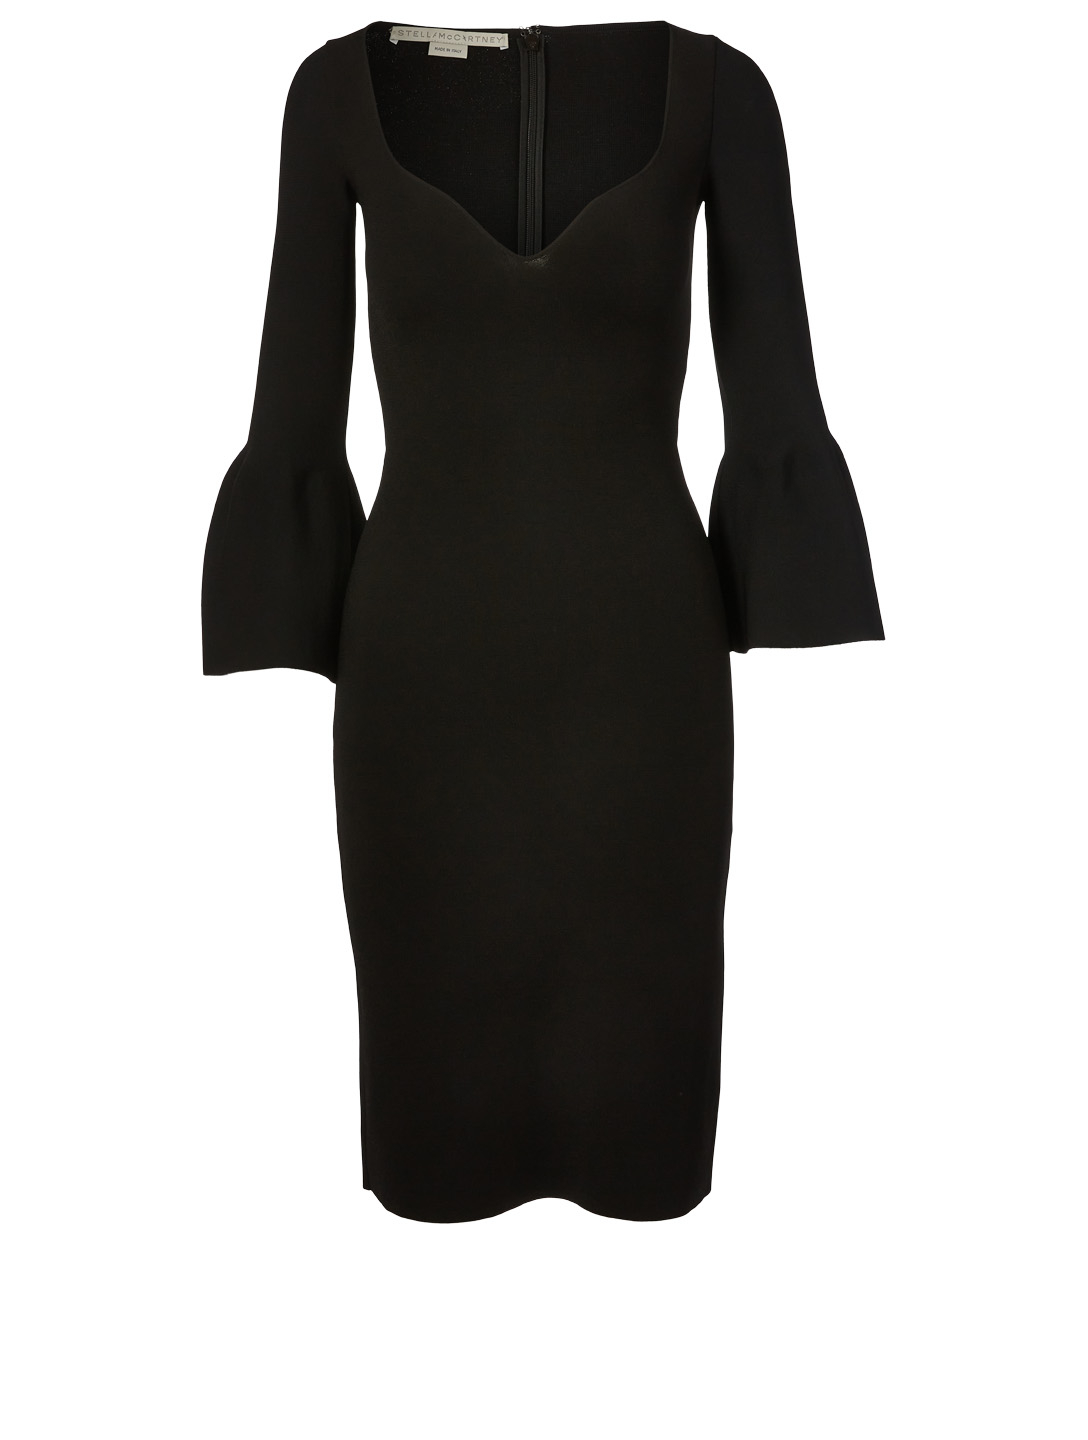 STELLA MCCARTNEY Compact Knit Midi Dress Women's Black